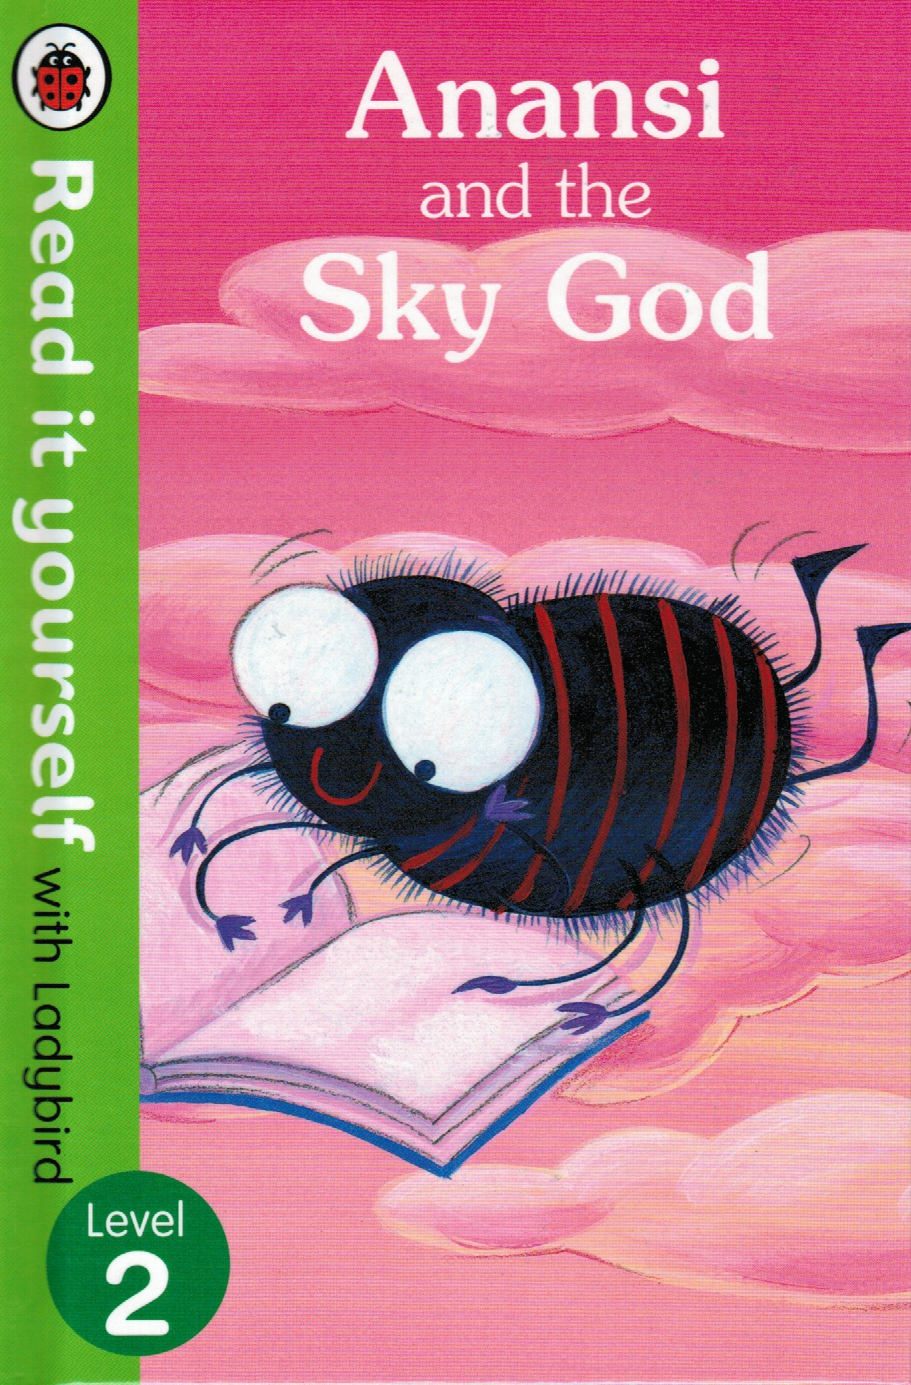 R.I.Y.2 - ANANSI AND THE SKY GOD